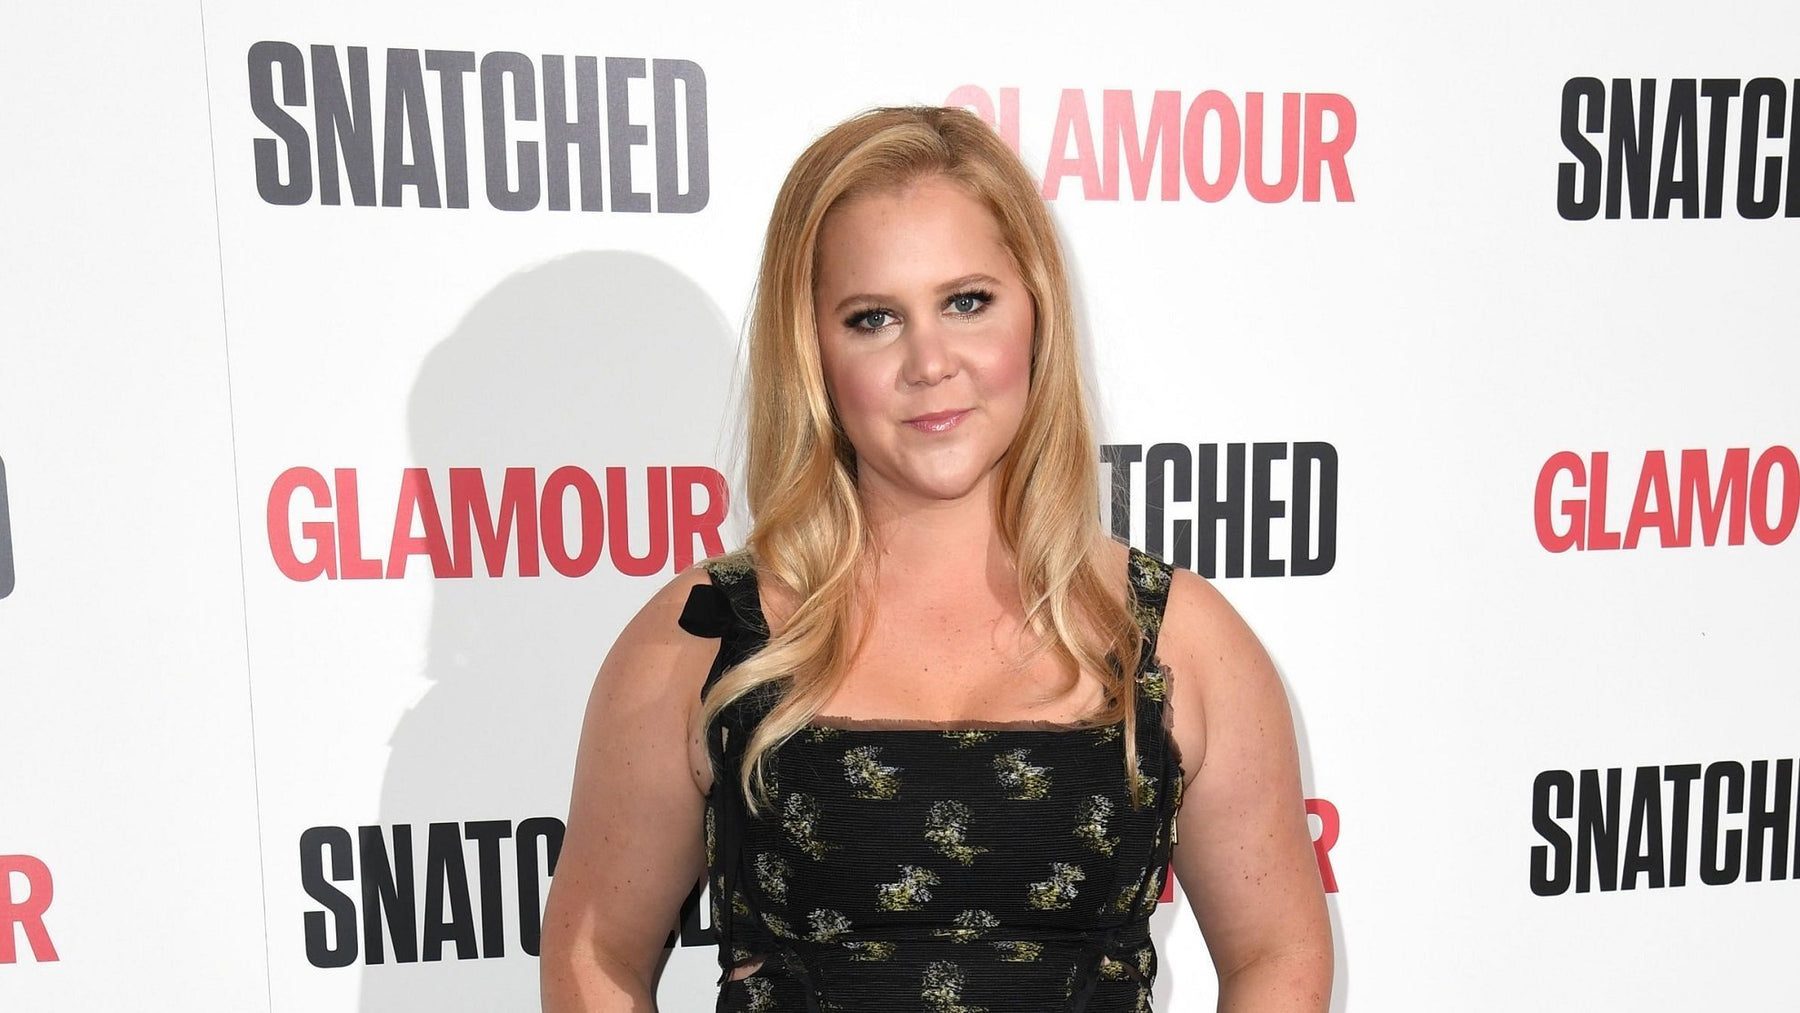 Amy Schumer Reveals Her Pregnancy In The Funniest Way